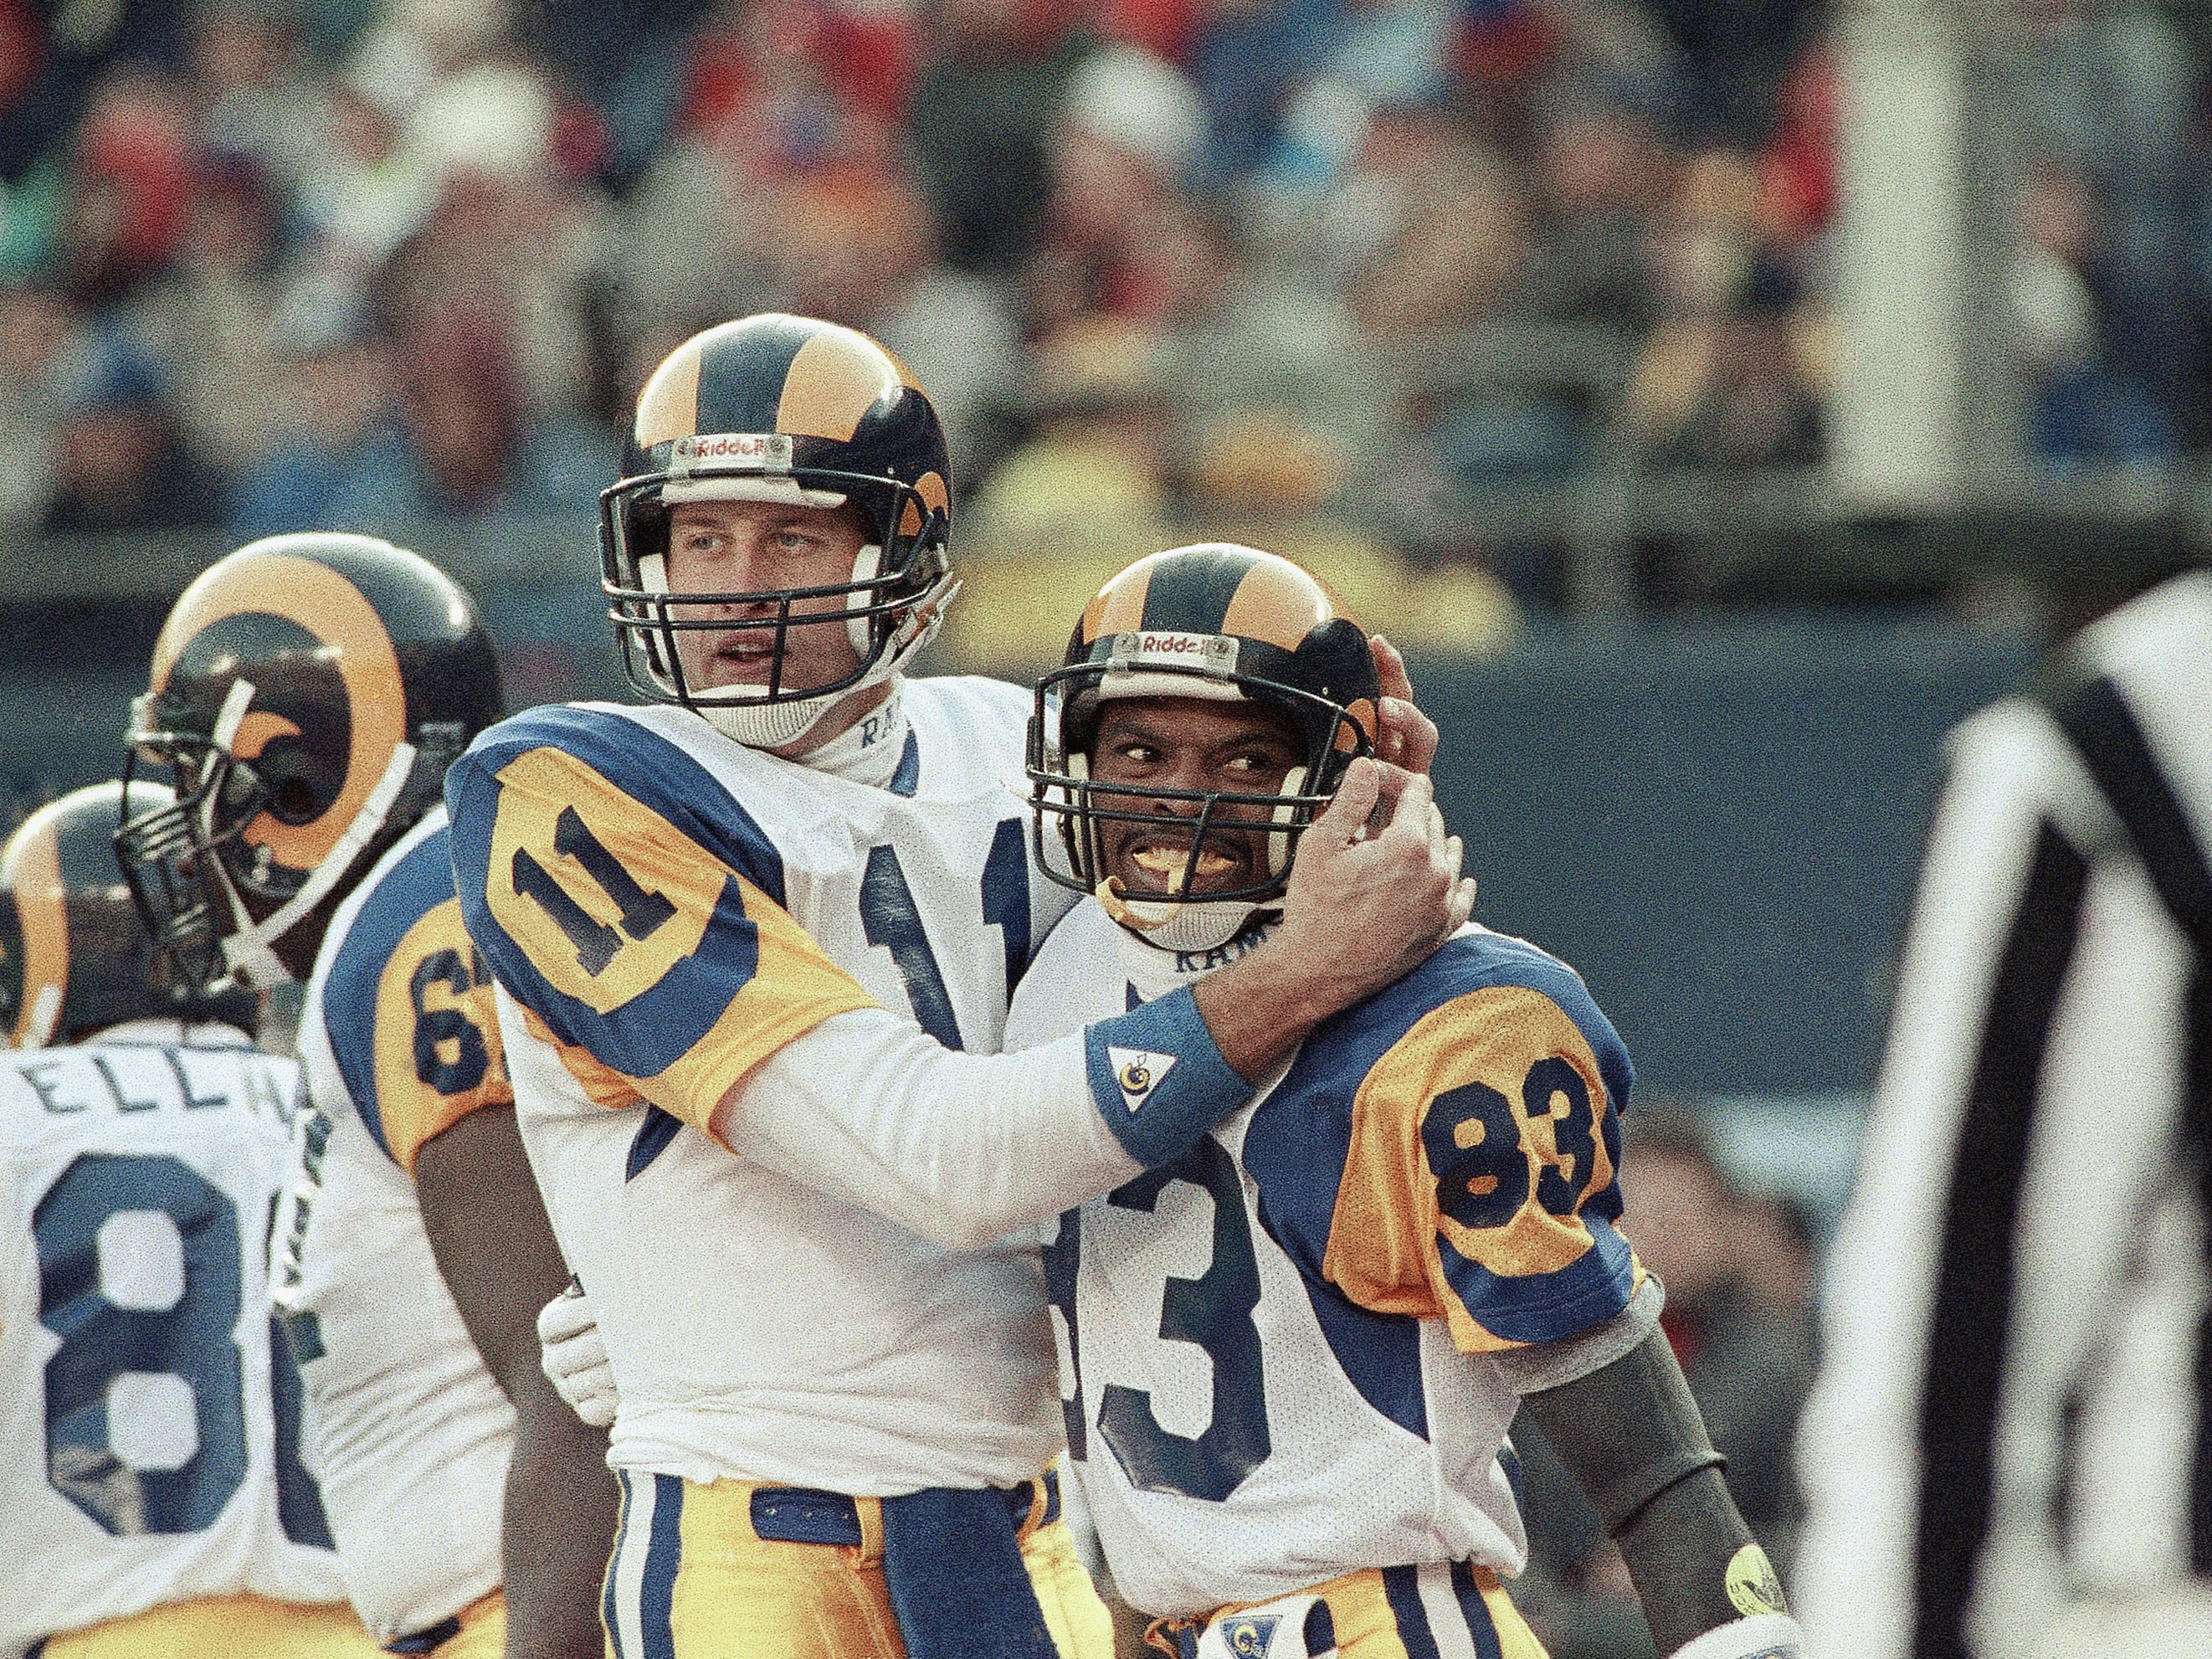 NFL Playoffs Rams Giants 1990